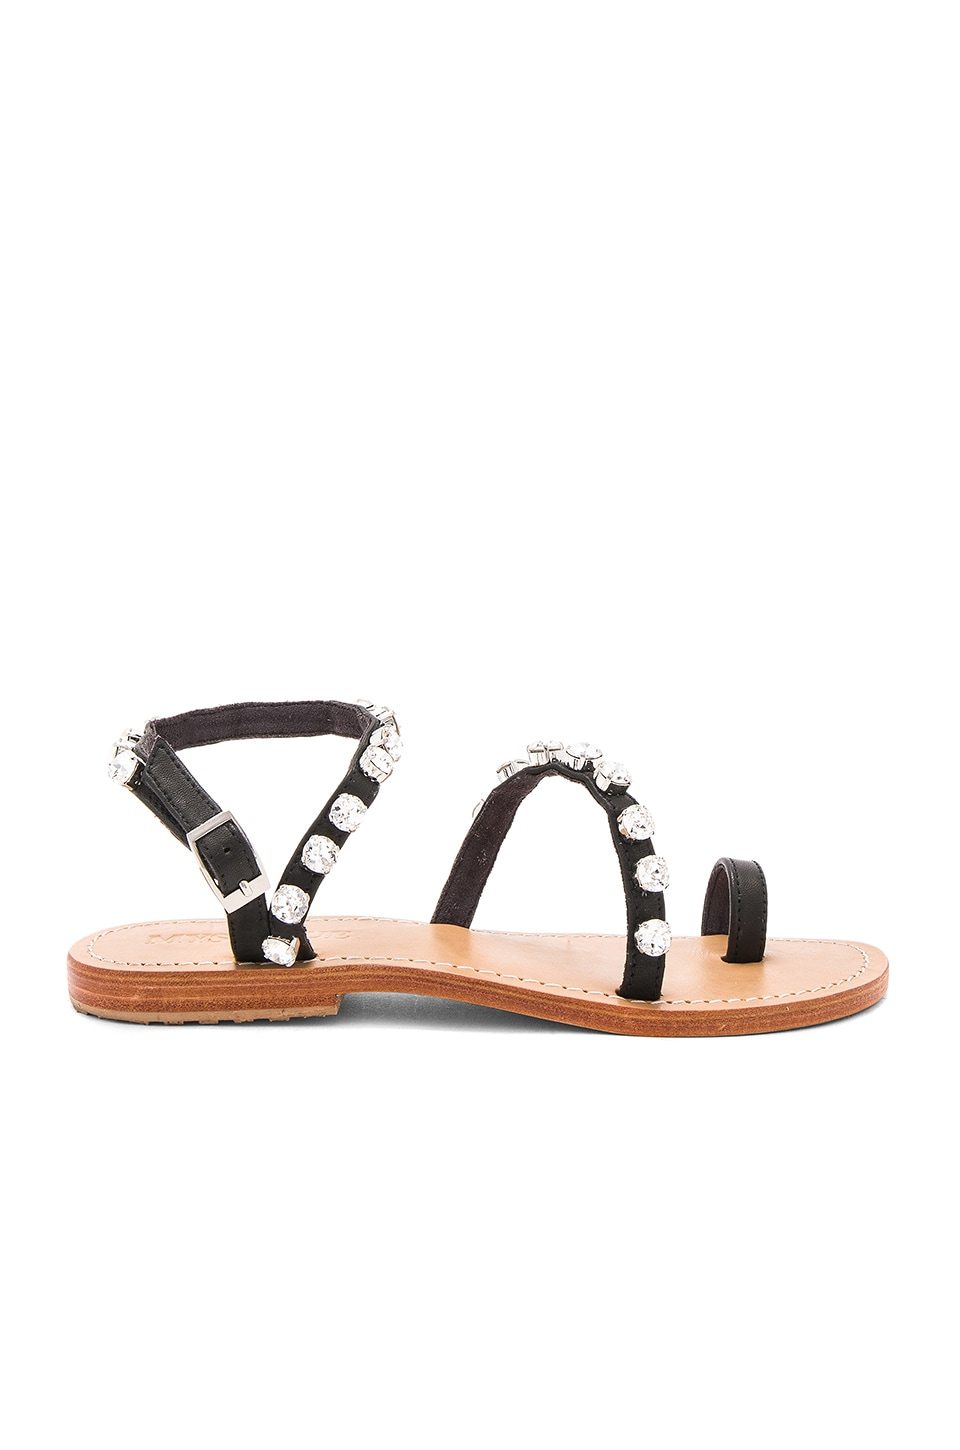 Mystique Flat Sandal in Black & Clear